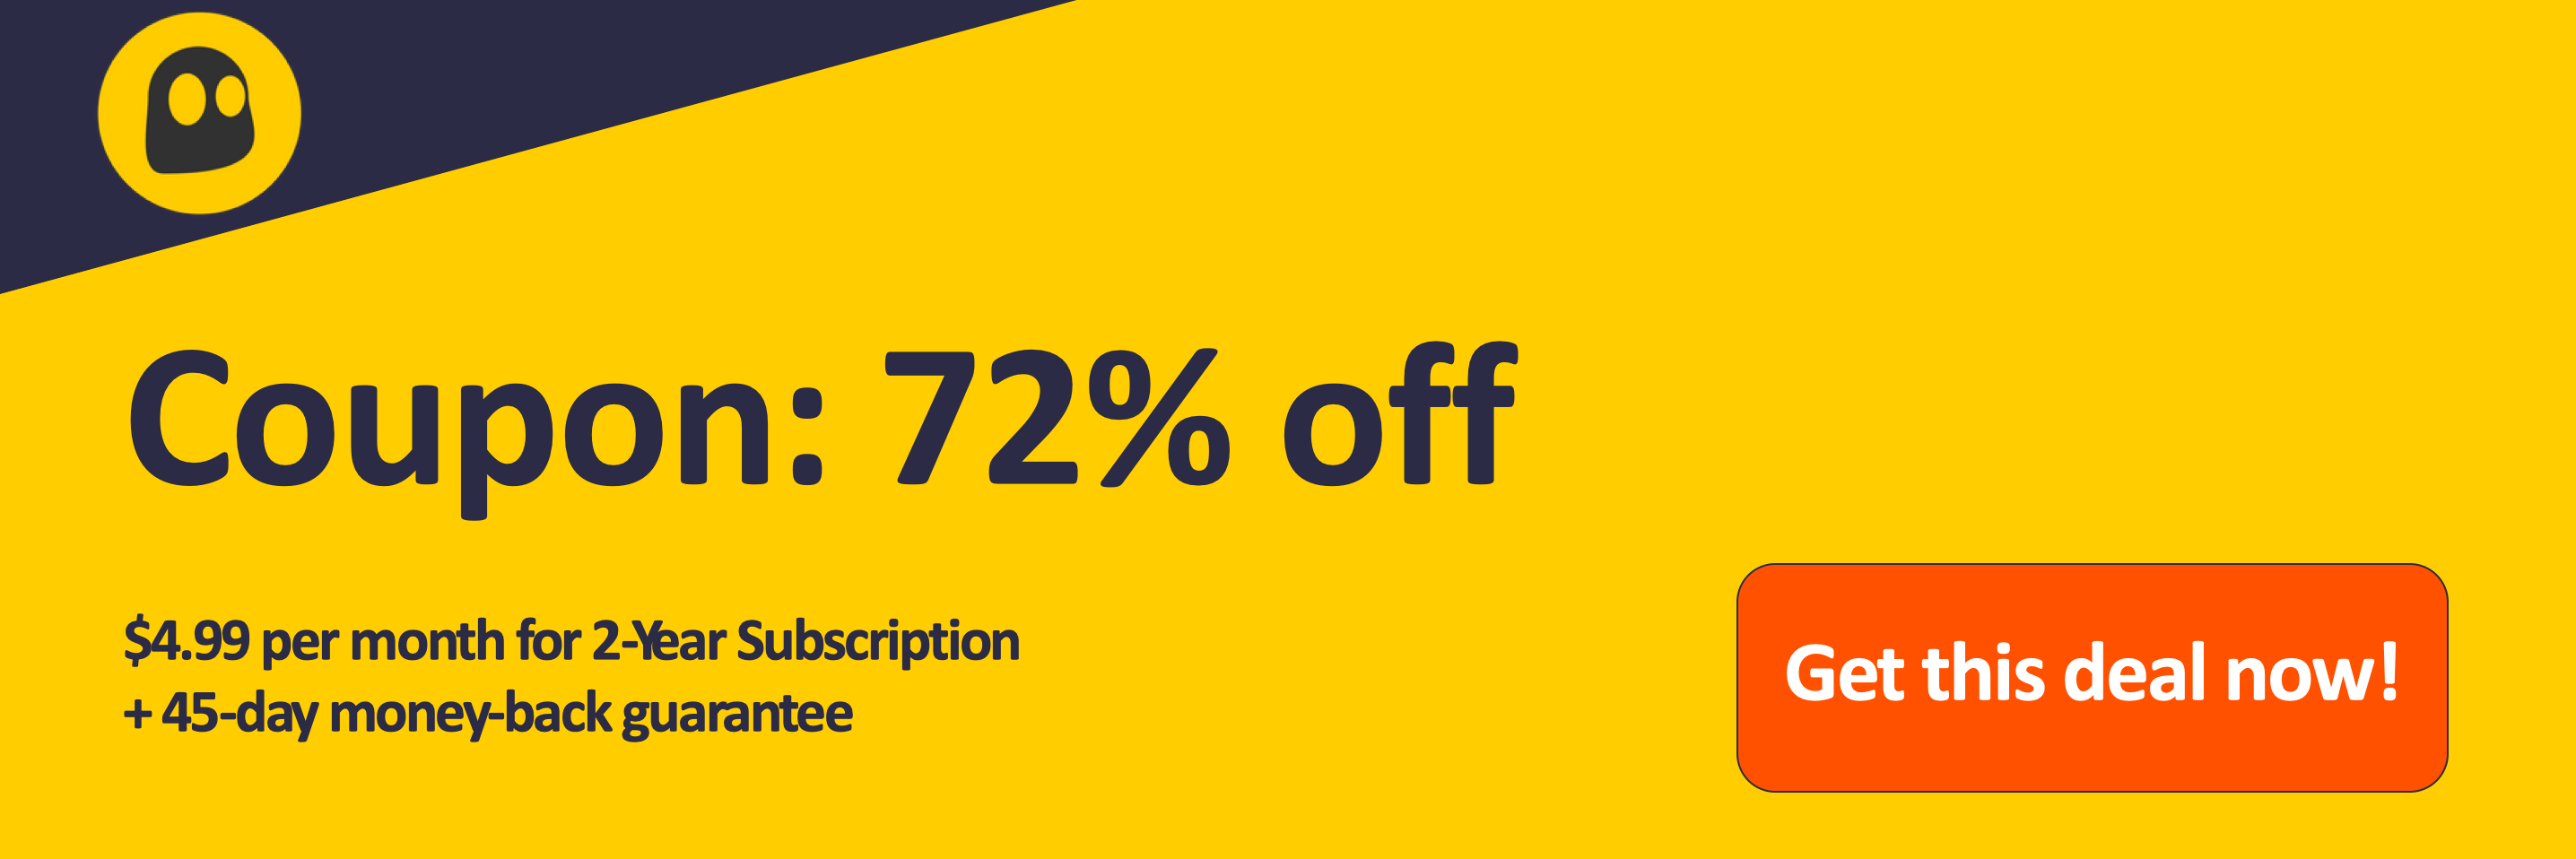 Graphic of a working CyberGhost VPN coupon offering a 72% discount which is $4.99 per month on a 2 year subscription with a 45 day money back guarantee